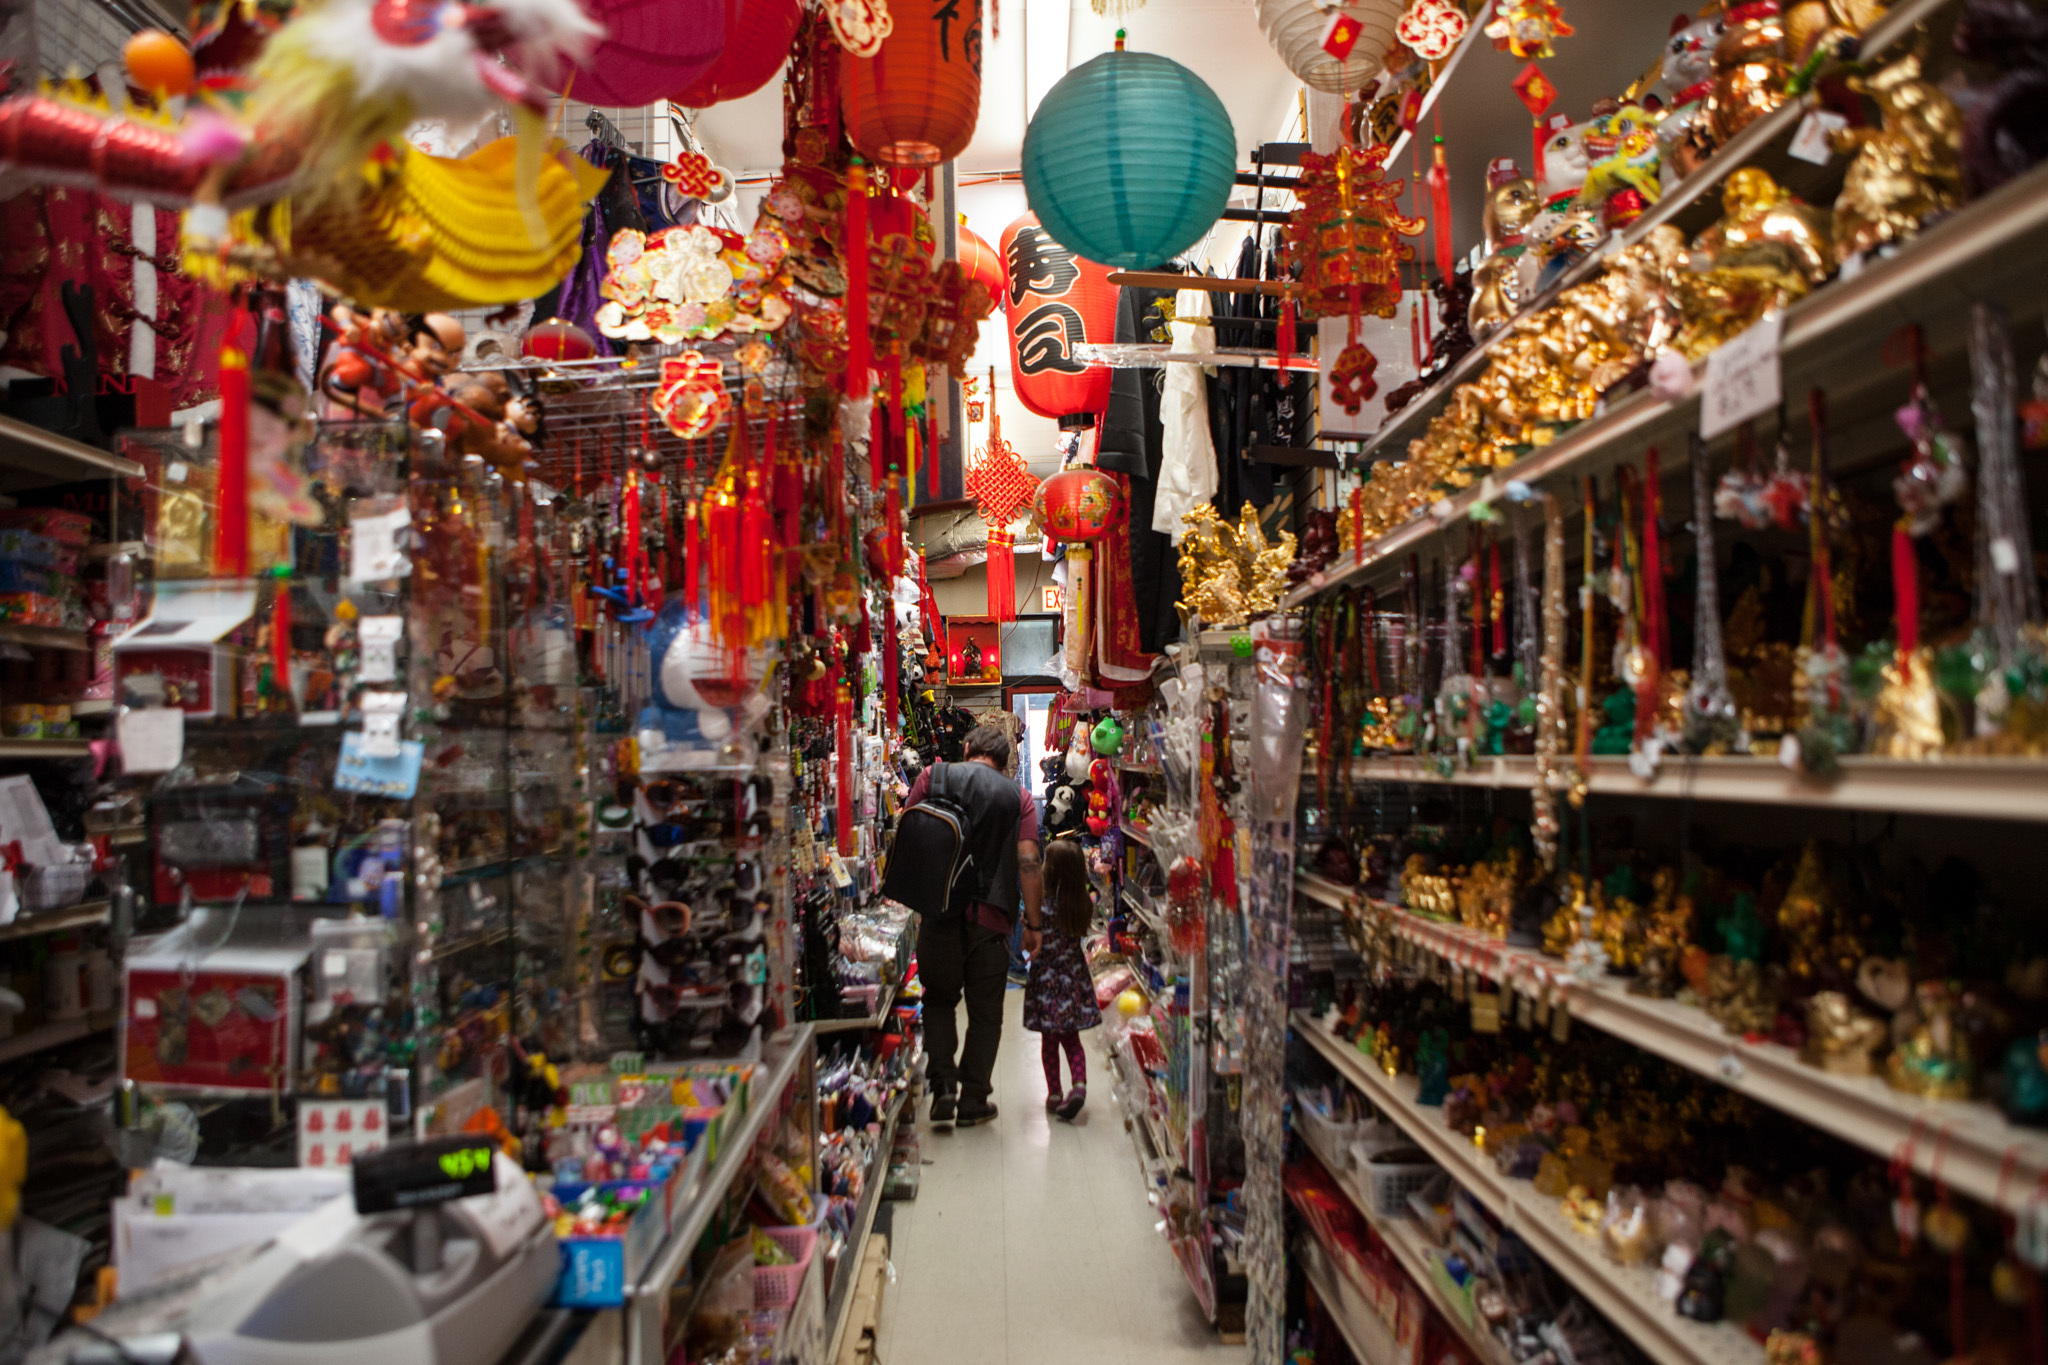 The best Chinatown shops from jewelry stores to candy shops